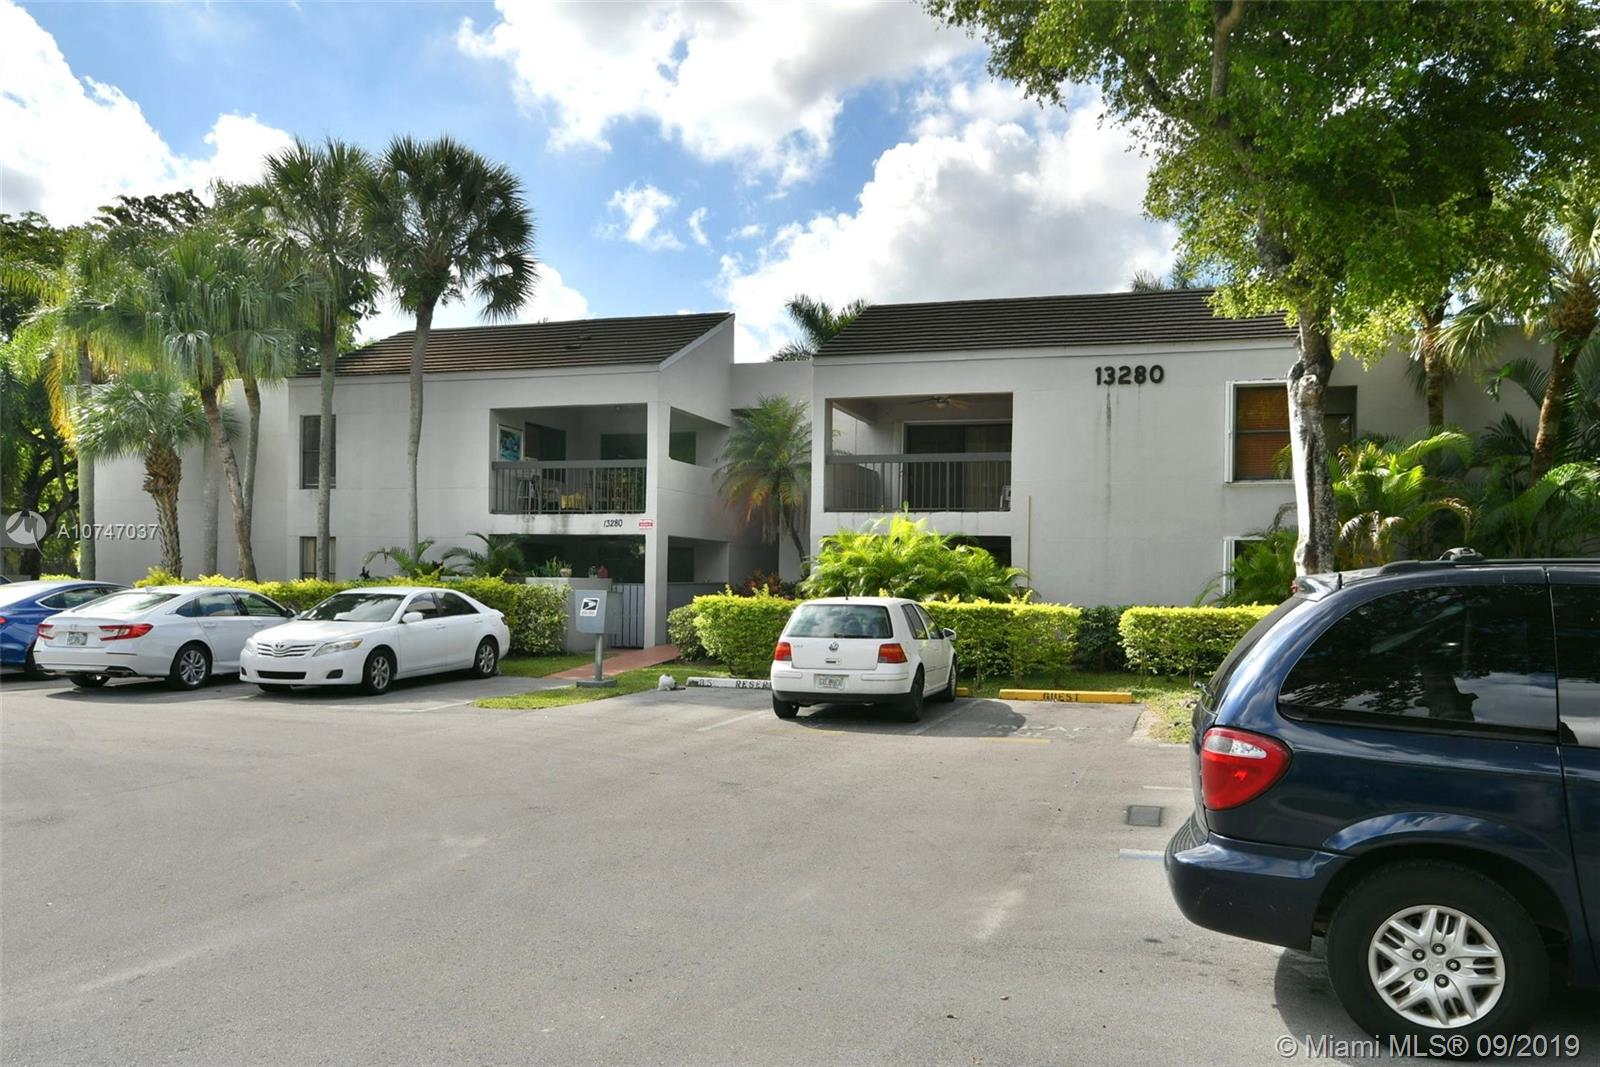 13280 SW 88th Ln, Kendall in Miami-dade County County, FL 33186 Home for Sale